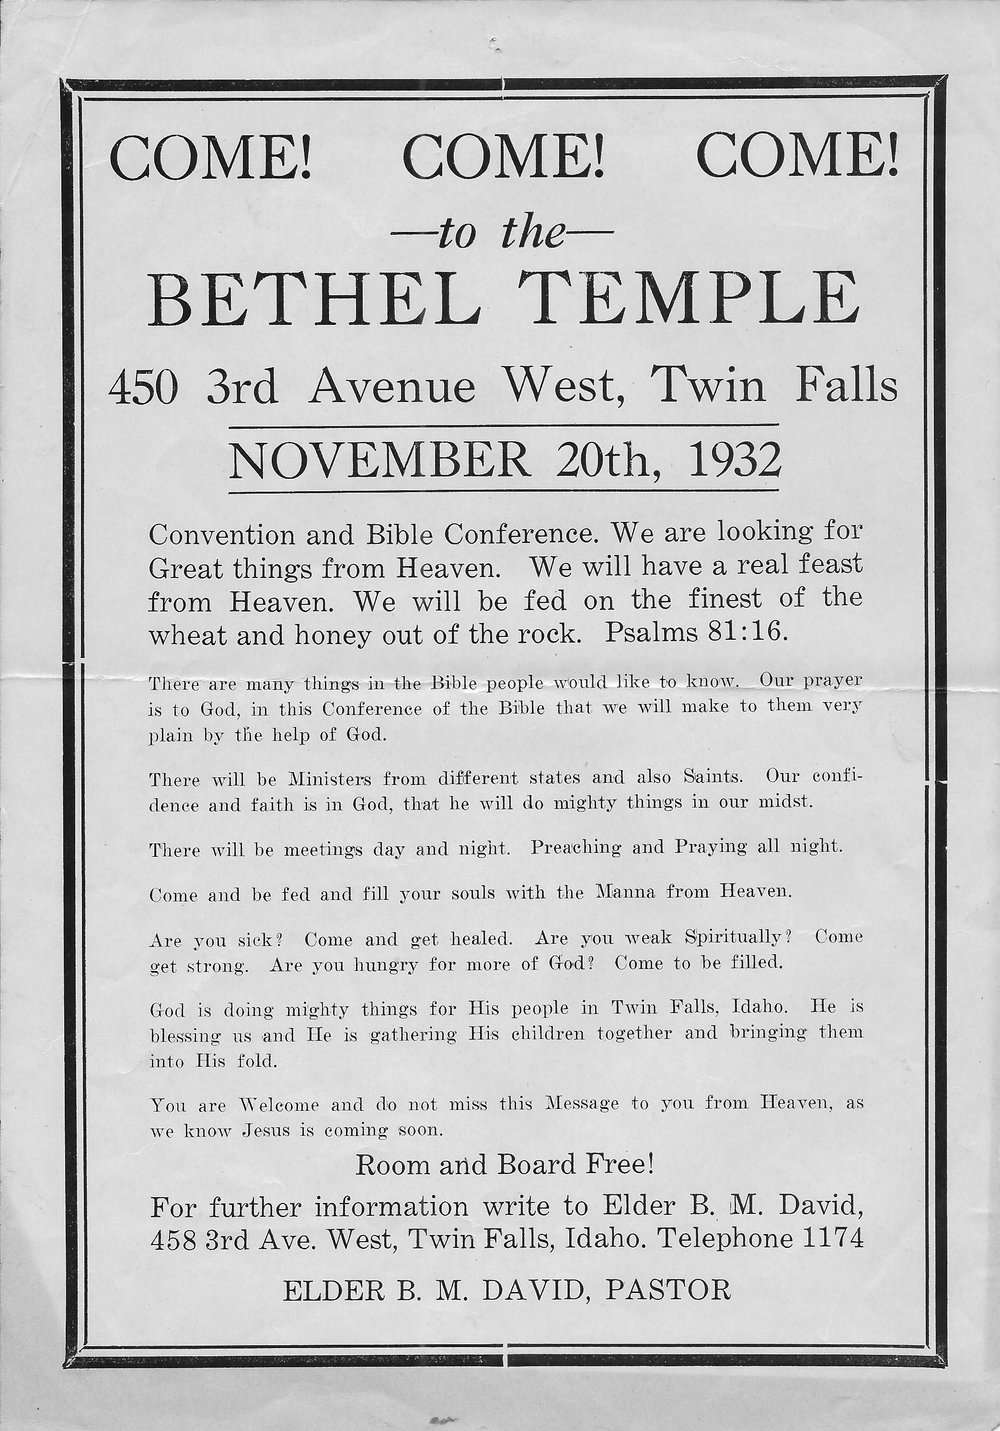 Come! Come! Come!  —to the—  BETHEL TEMPLE  450 3rd Avenue West, Twin Falls  November 20th, 1932  Convention and Bible Conference. We are looking for Great things from Heaven. We will have a real feast from Heaven. We will be fed of the finest of the wheat and honey out of the rock. Psalms 81:16  There are many things in the Bible people would like to know. Our prayer is to God, in this Conference of the Bible that we will make to them very pain by the help of God.  There will be Ministers from different states and also Saints. Our confidence and faith is in God, that he will do mighty things in our midst.  There will be meetings day and night. Preaching and Praying all night.  Come and be fed and fill your souls with the Manna from Heaven.  Are you sick? Come and get healed. Are you weak Spiritually? Come get strong. Are your hungry for more of God? Come to be filled.  God is doing mights things for His people in Twin Falls, Idaho. He is blessing us and He is gathering His children together and bringing them into Hid fold.  You are Welcome and do not miss this Message to you from Heaven, as we know Jesus is coming soon.  Room and Board Free!  For further information write to Elder B. M. David, 458 3rd Ave. West, Twin Falls, Idaho. Telephone 1174  ELDER B. M. DAVID, PASTOR